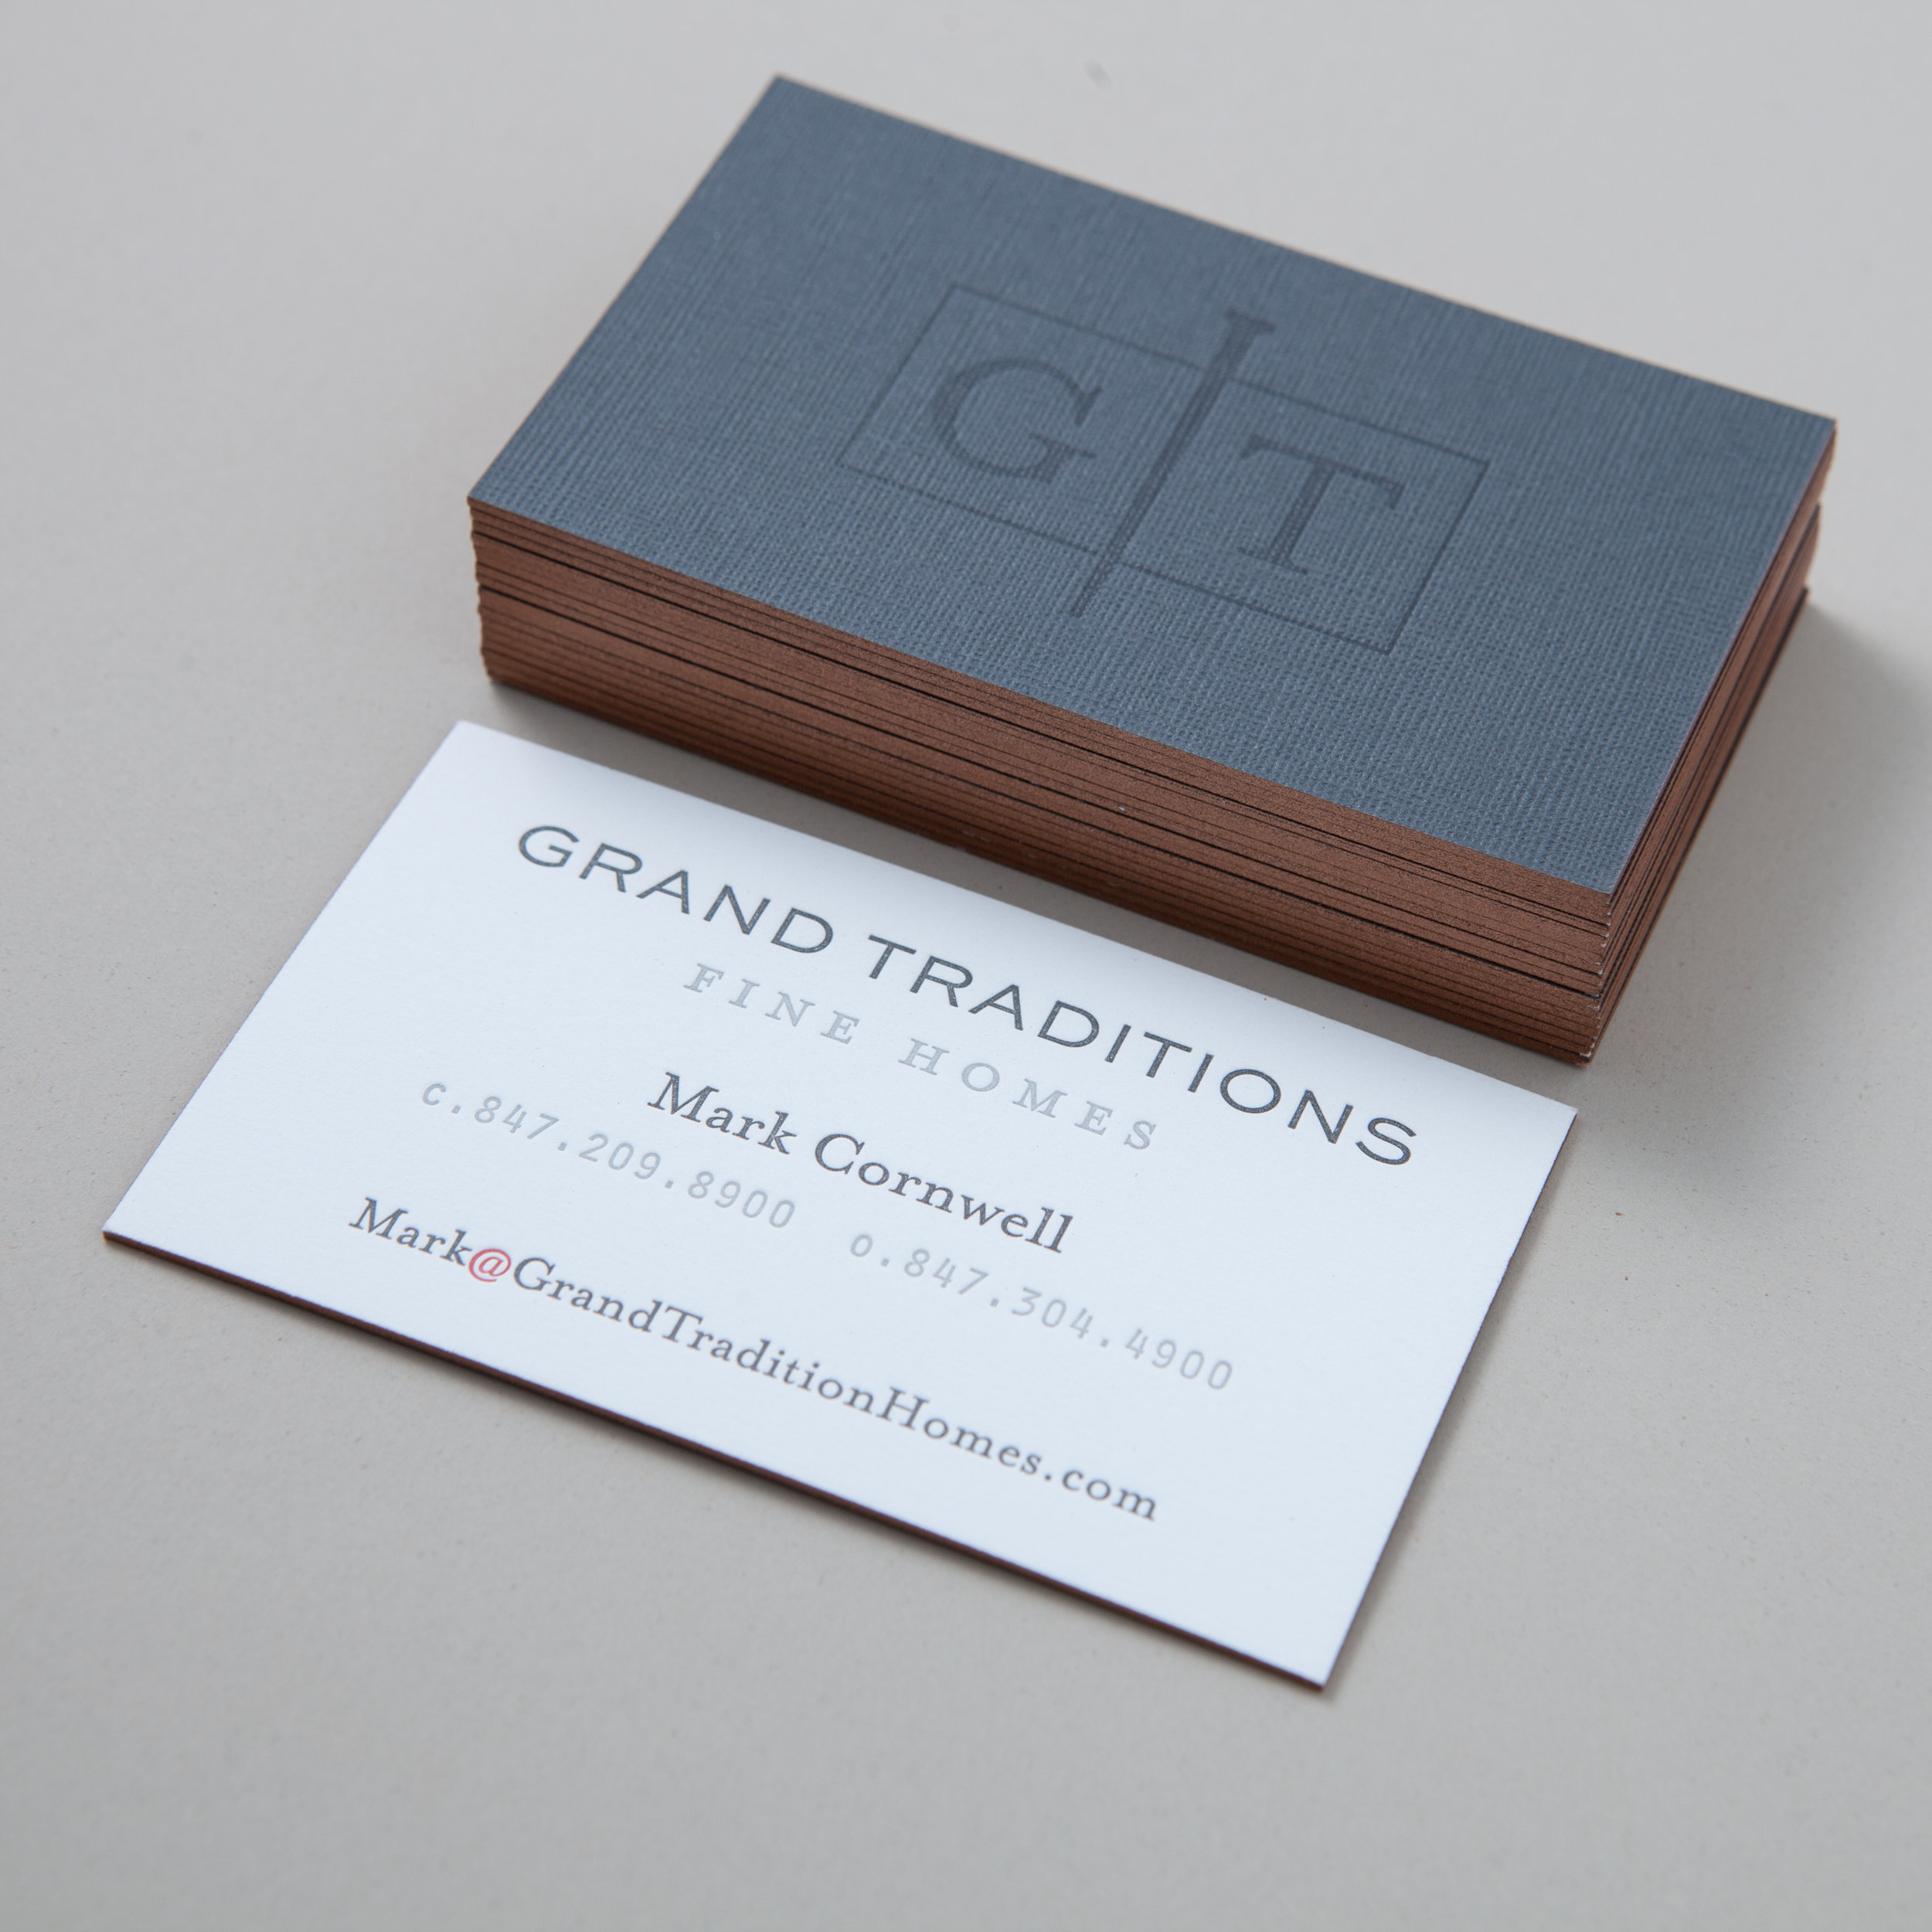 Grand Tradition Fine Homes